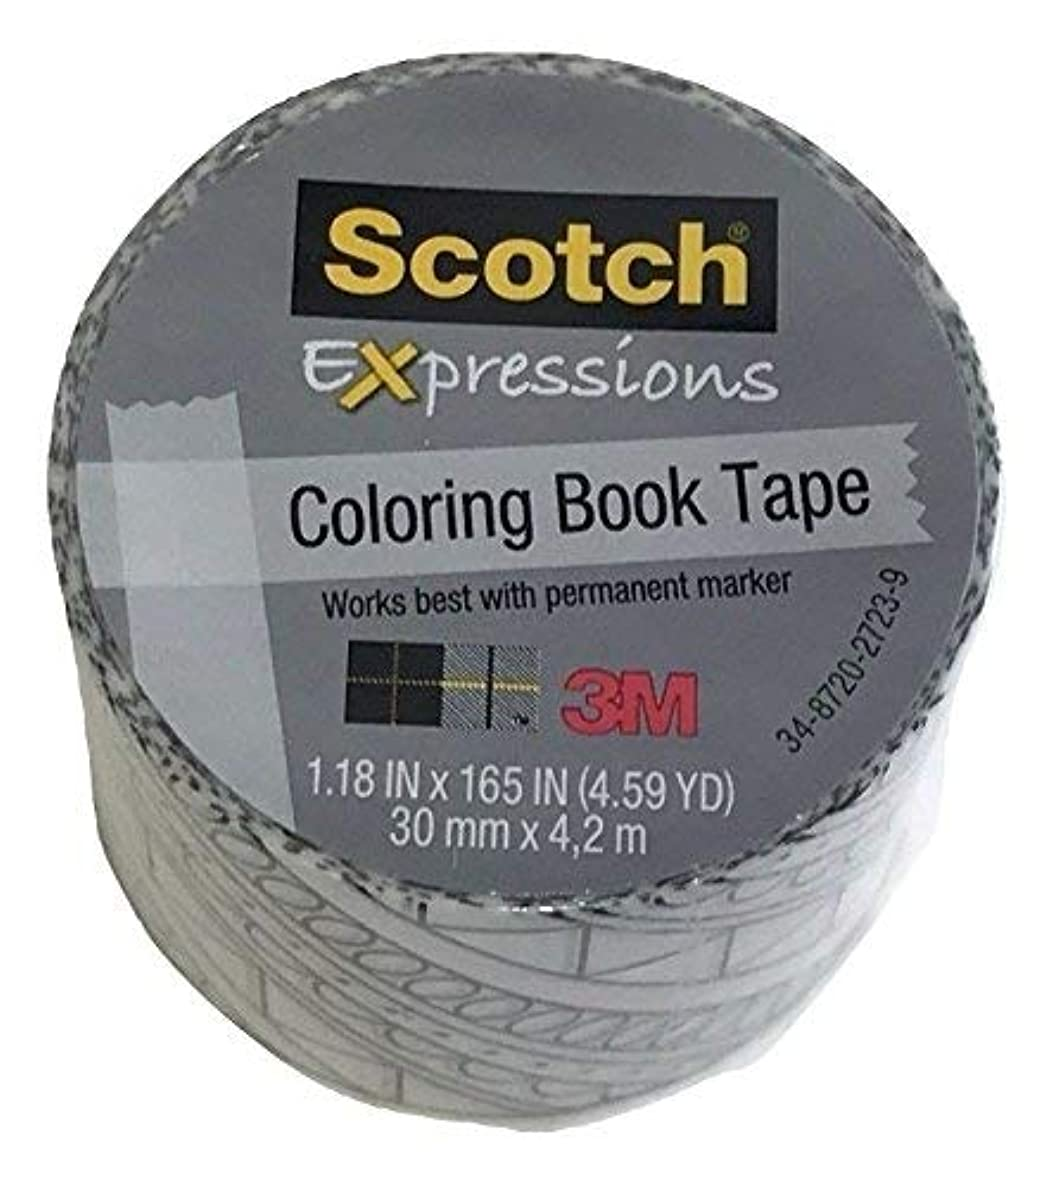 Scotch Expressions Coloring Book Tape, Diagonal 1.18 in x 165 in